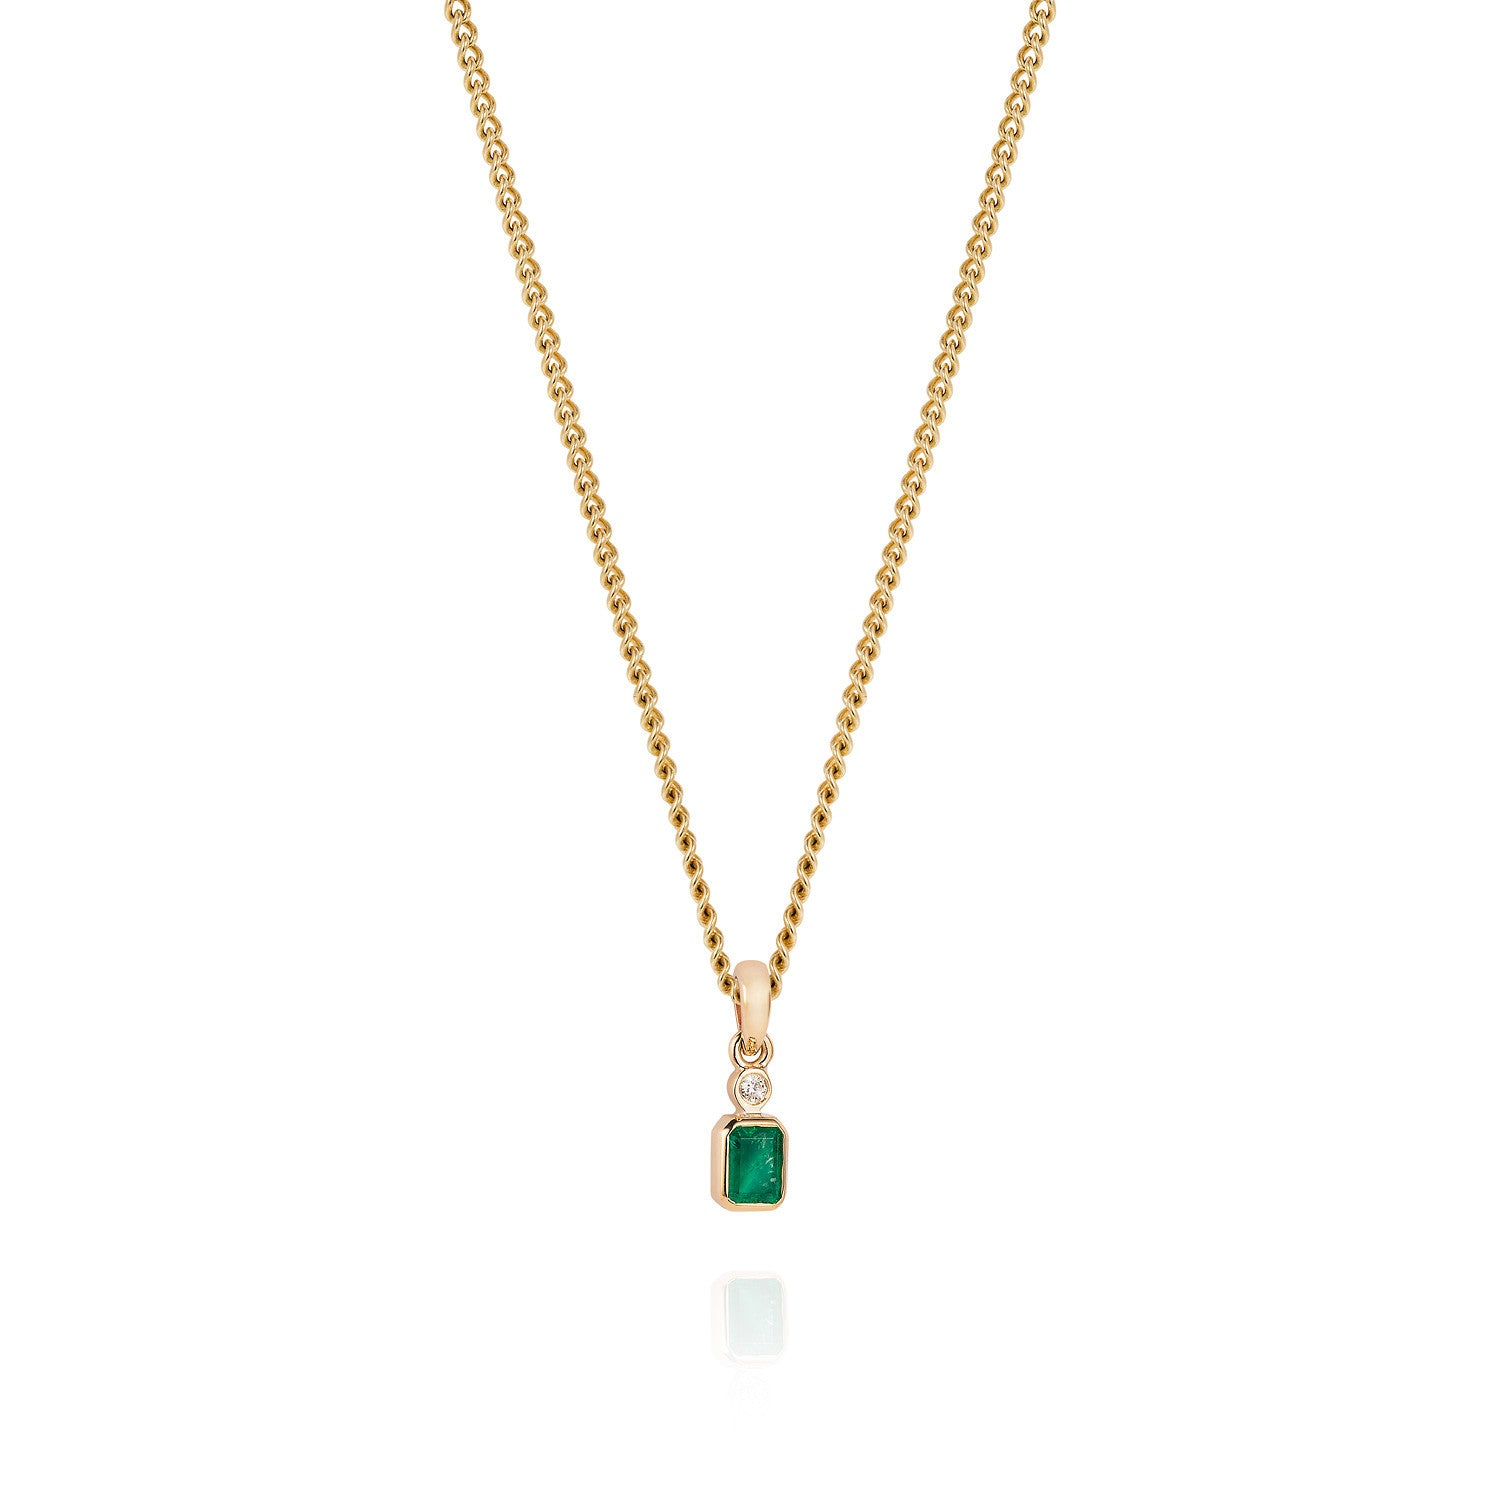 Emerald and diamond pendant necklace joy everley fine jewellers emerald and diamond pendant necklace joy everley fine jewellers london aloadofball Gallery